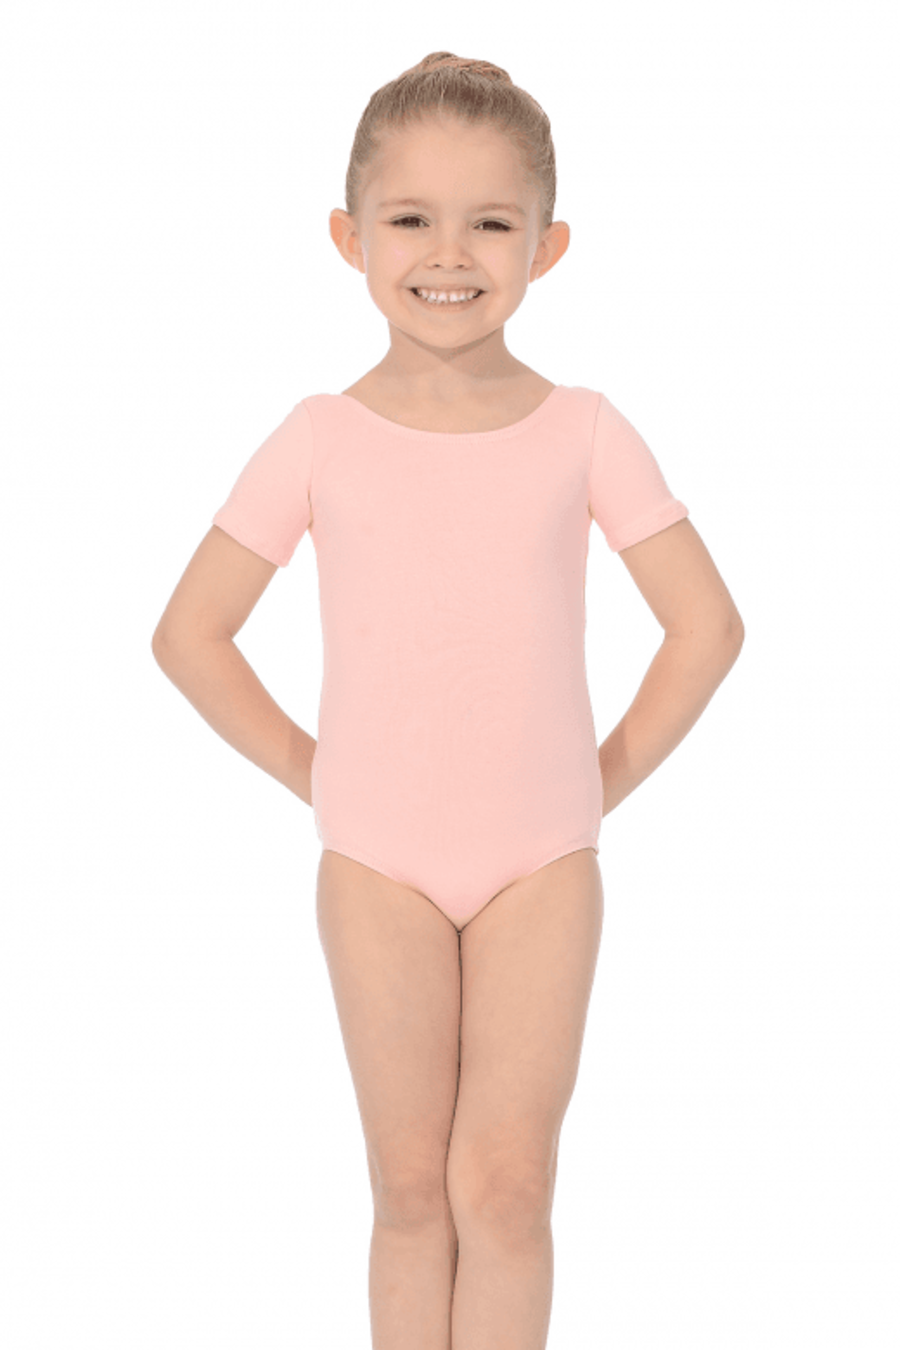 Roch Valley Prim Pale Pink short sleeve cotton lycra leotard